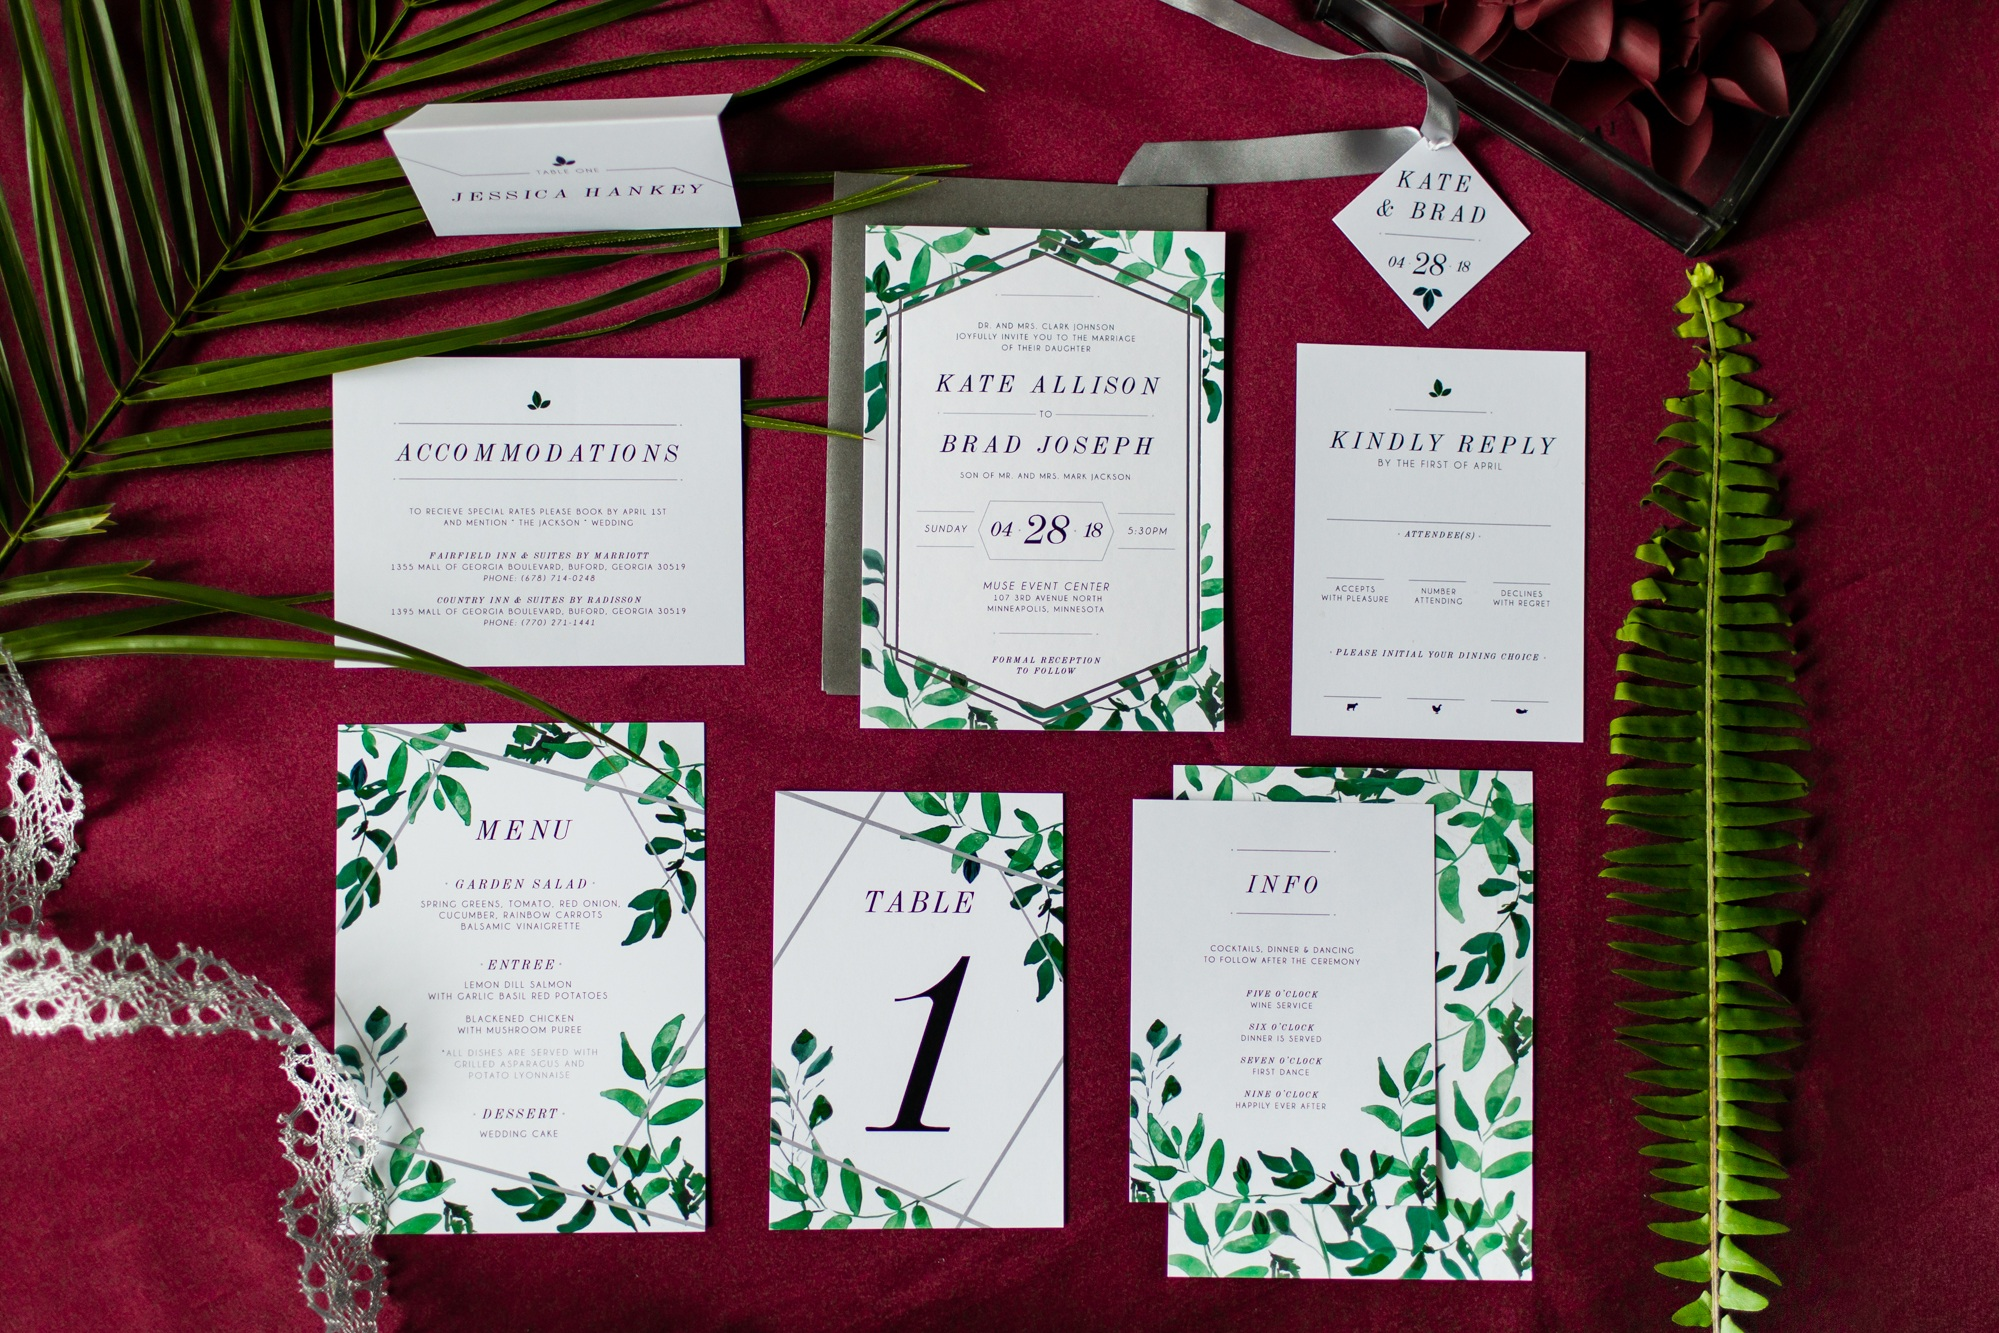 Fern inspired stationary displayed on burgundy table linen